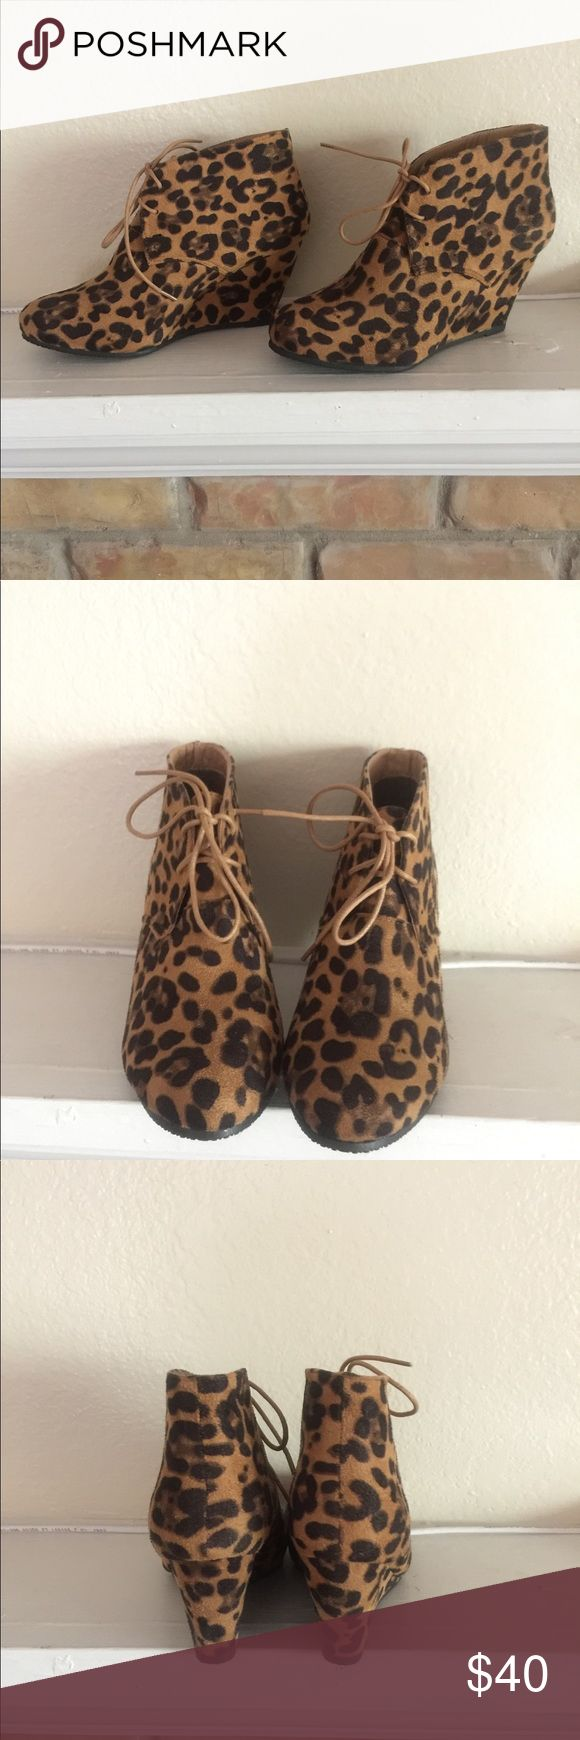 Leopard Wedge booties Beautiful suede leopard wedges. Size 8. Never worn. True to size. Great for the fall paired with a sweater tunic and tights.💕💕 Shoes Lace Up Boots